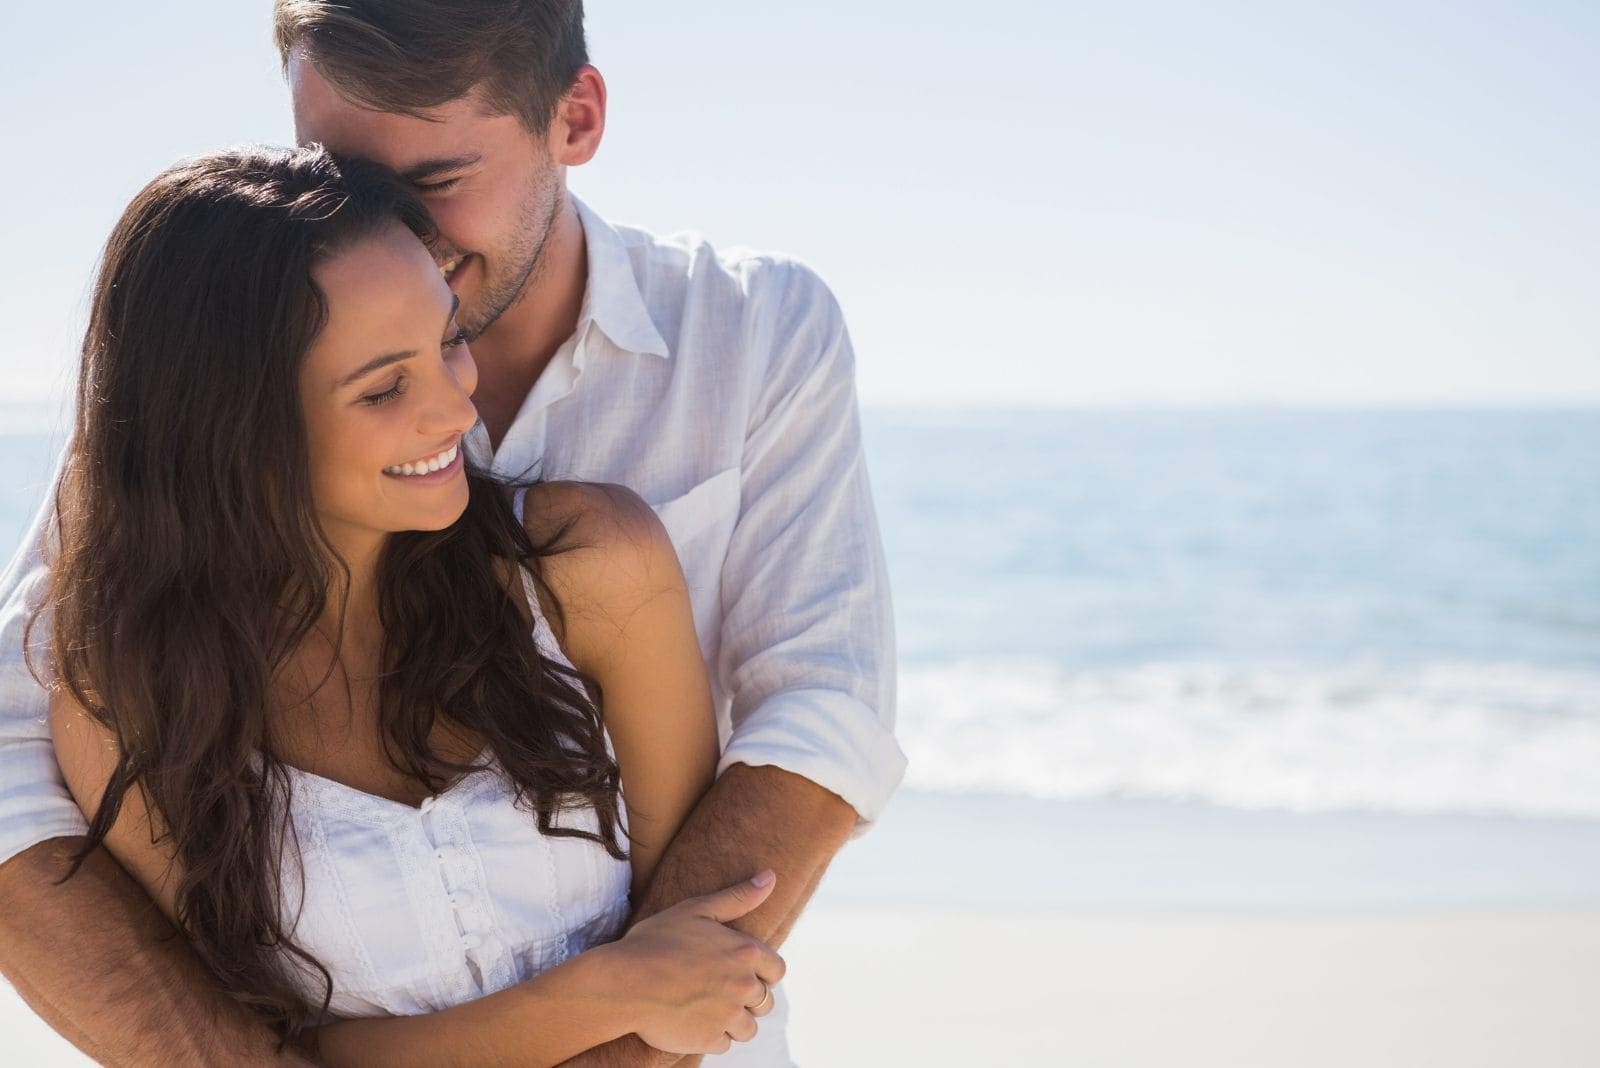 attractive couple cuddling sweetly in the beach wearing white top/dress